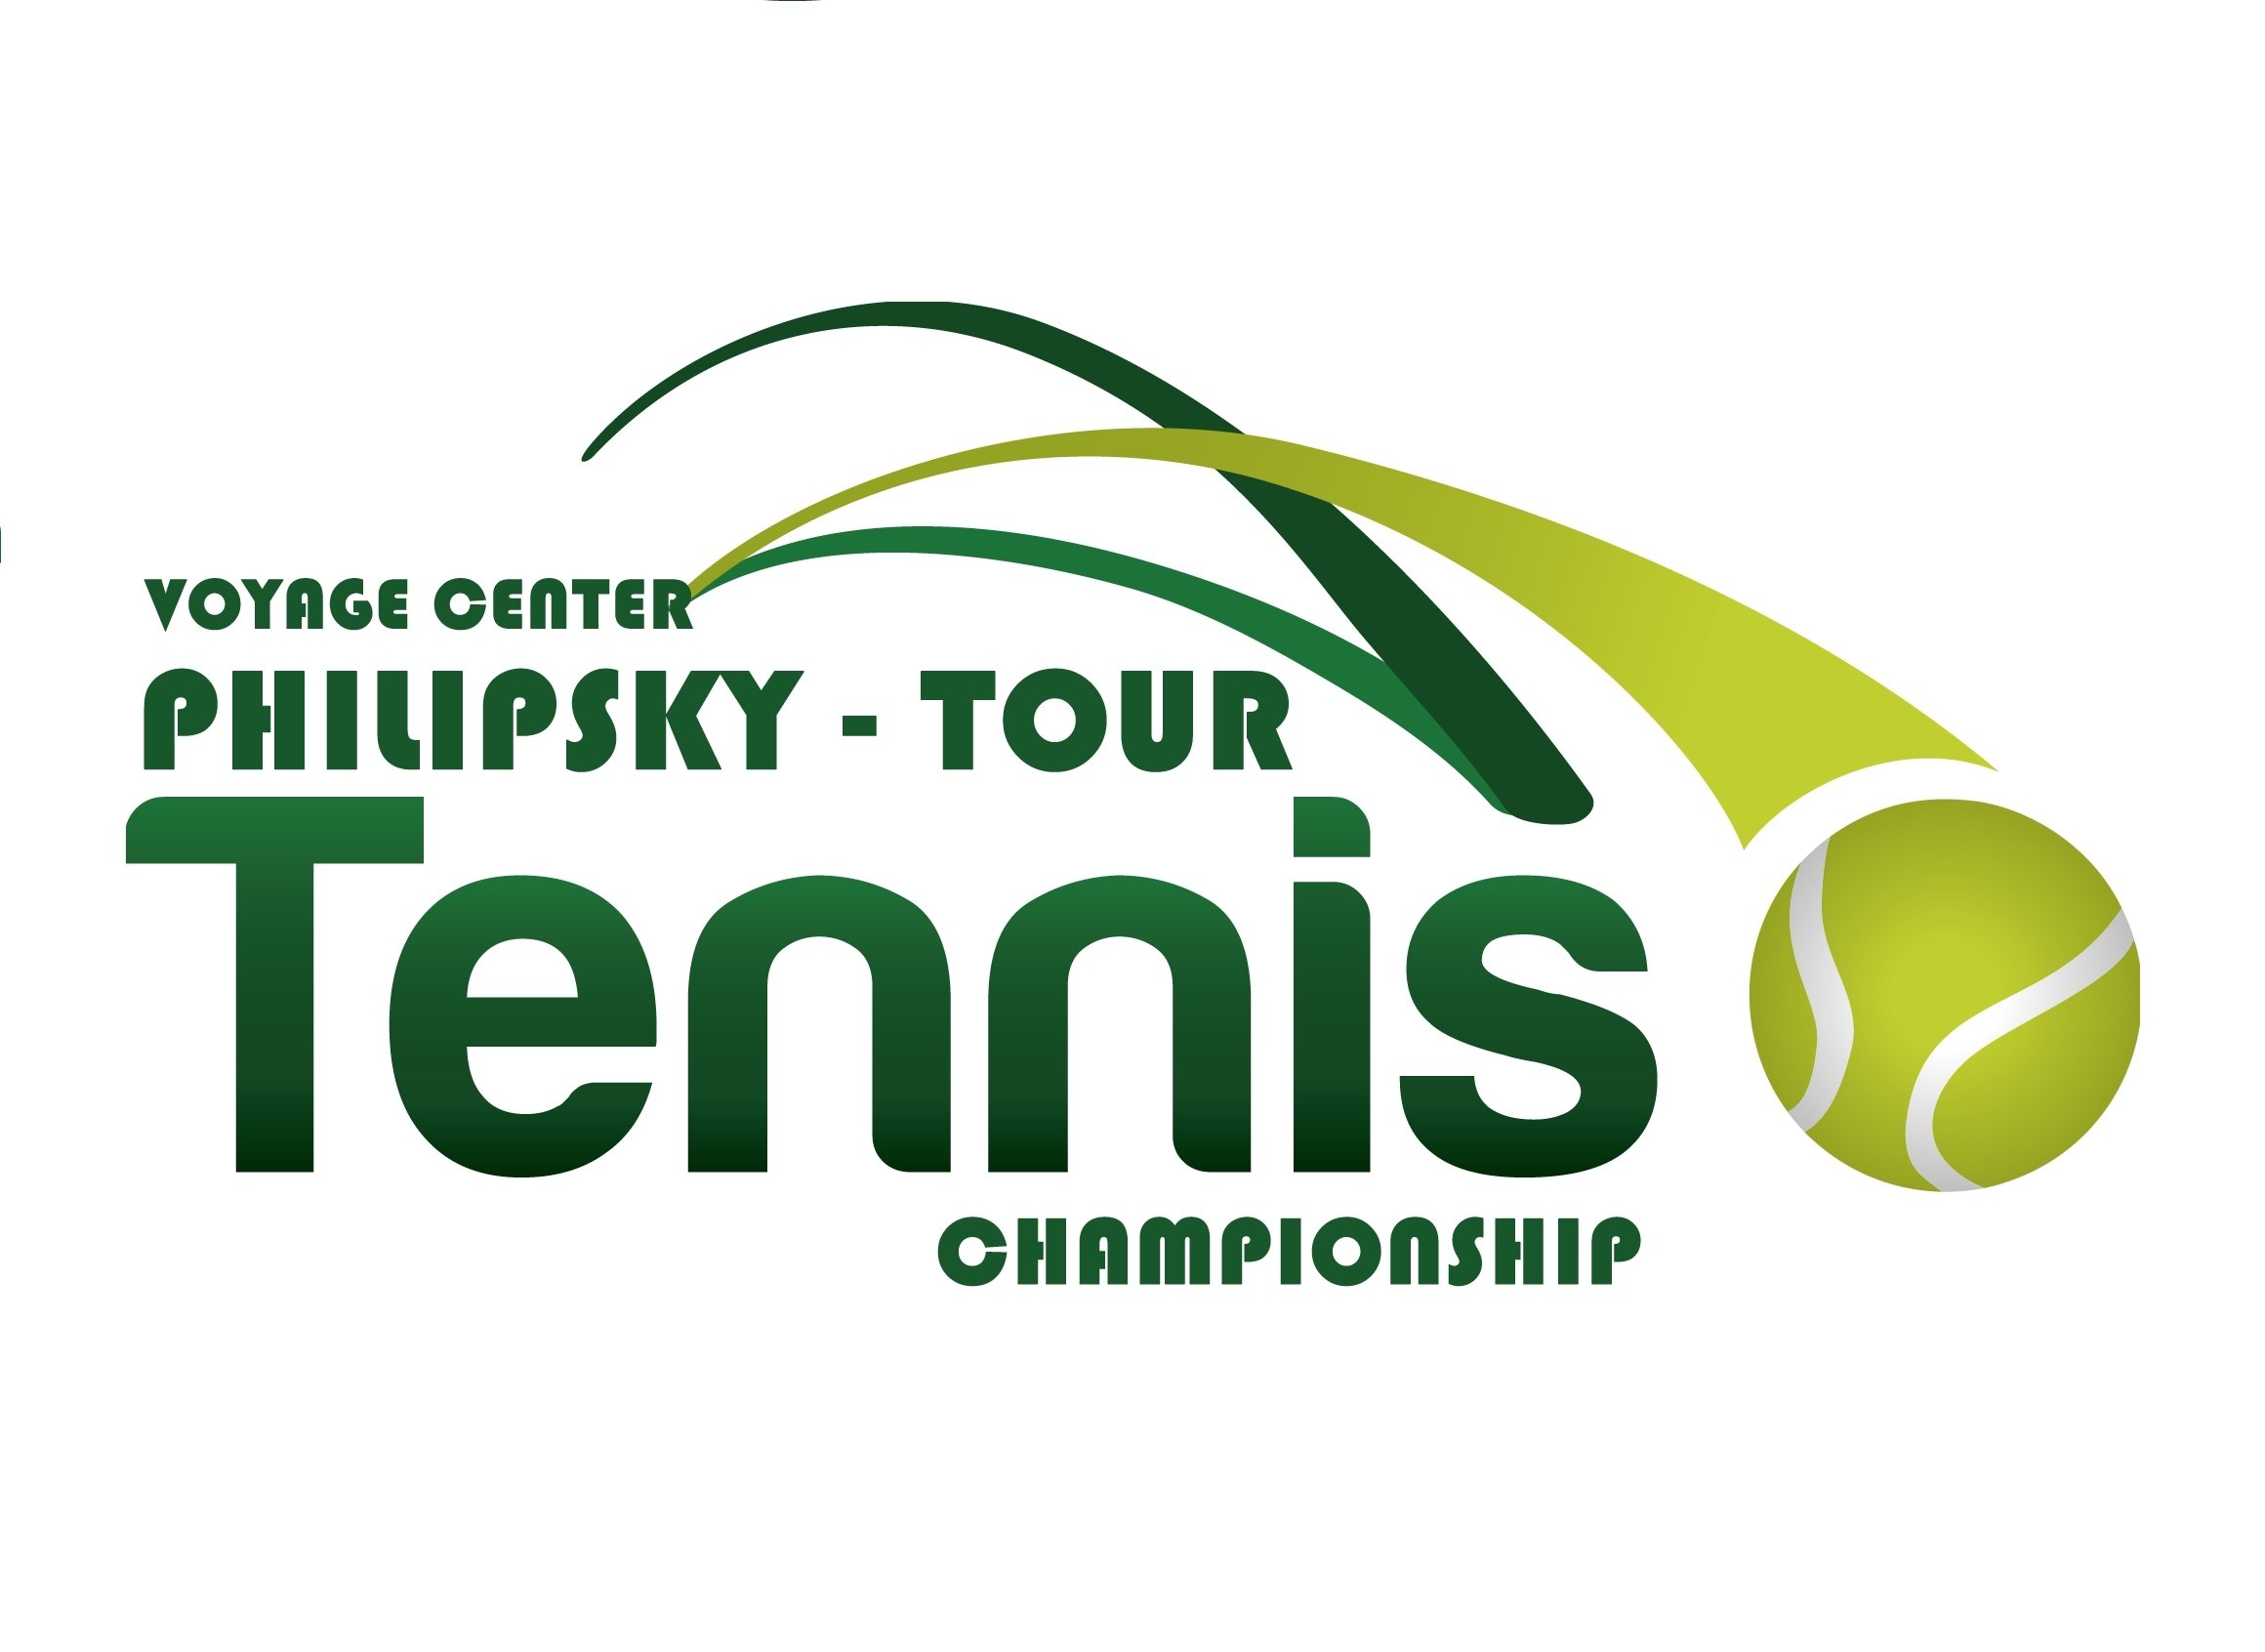 TENNIS CHANPIONSHIP - VOYAGE CENTER PHILIPSKY - TOUR